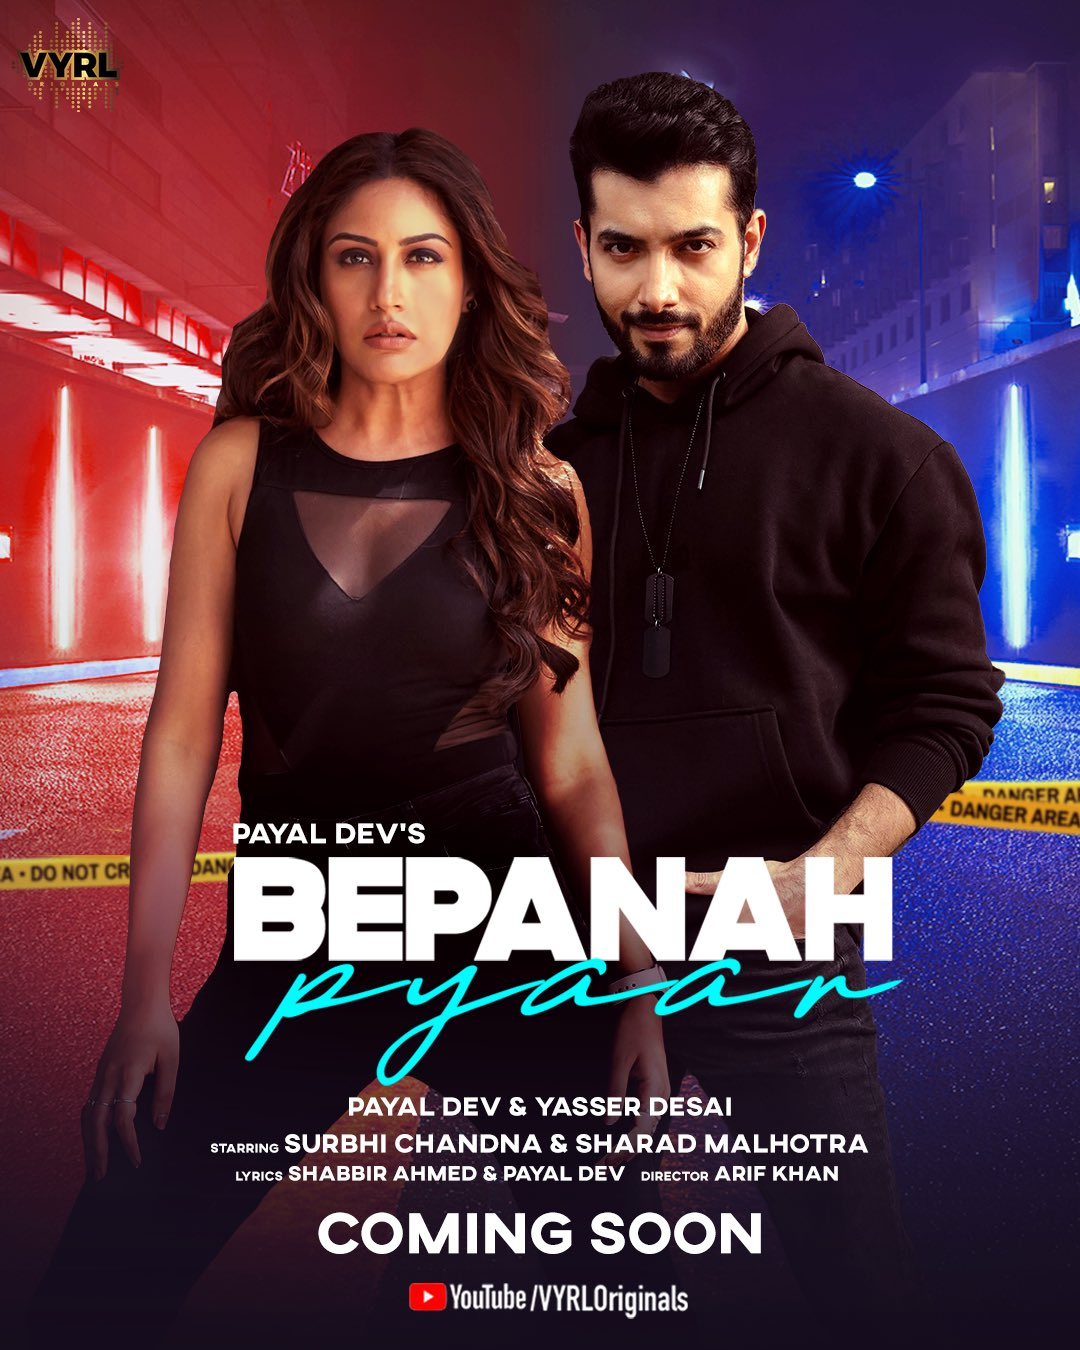 Bepanah Pyaar By Payal Dev & Yasser Desai Official Music Video 1080p HDRip 61MB Download